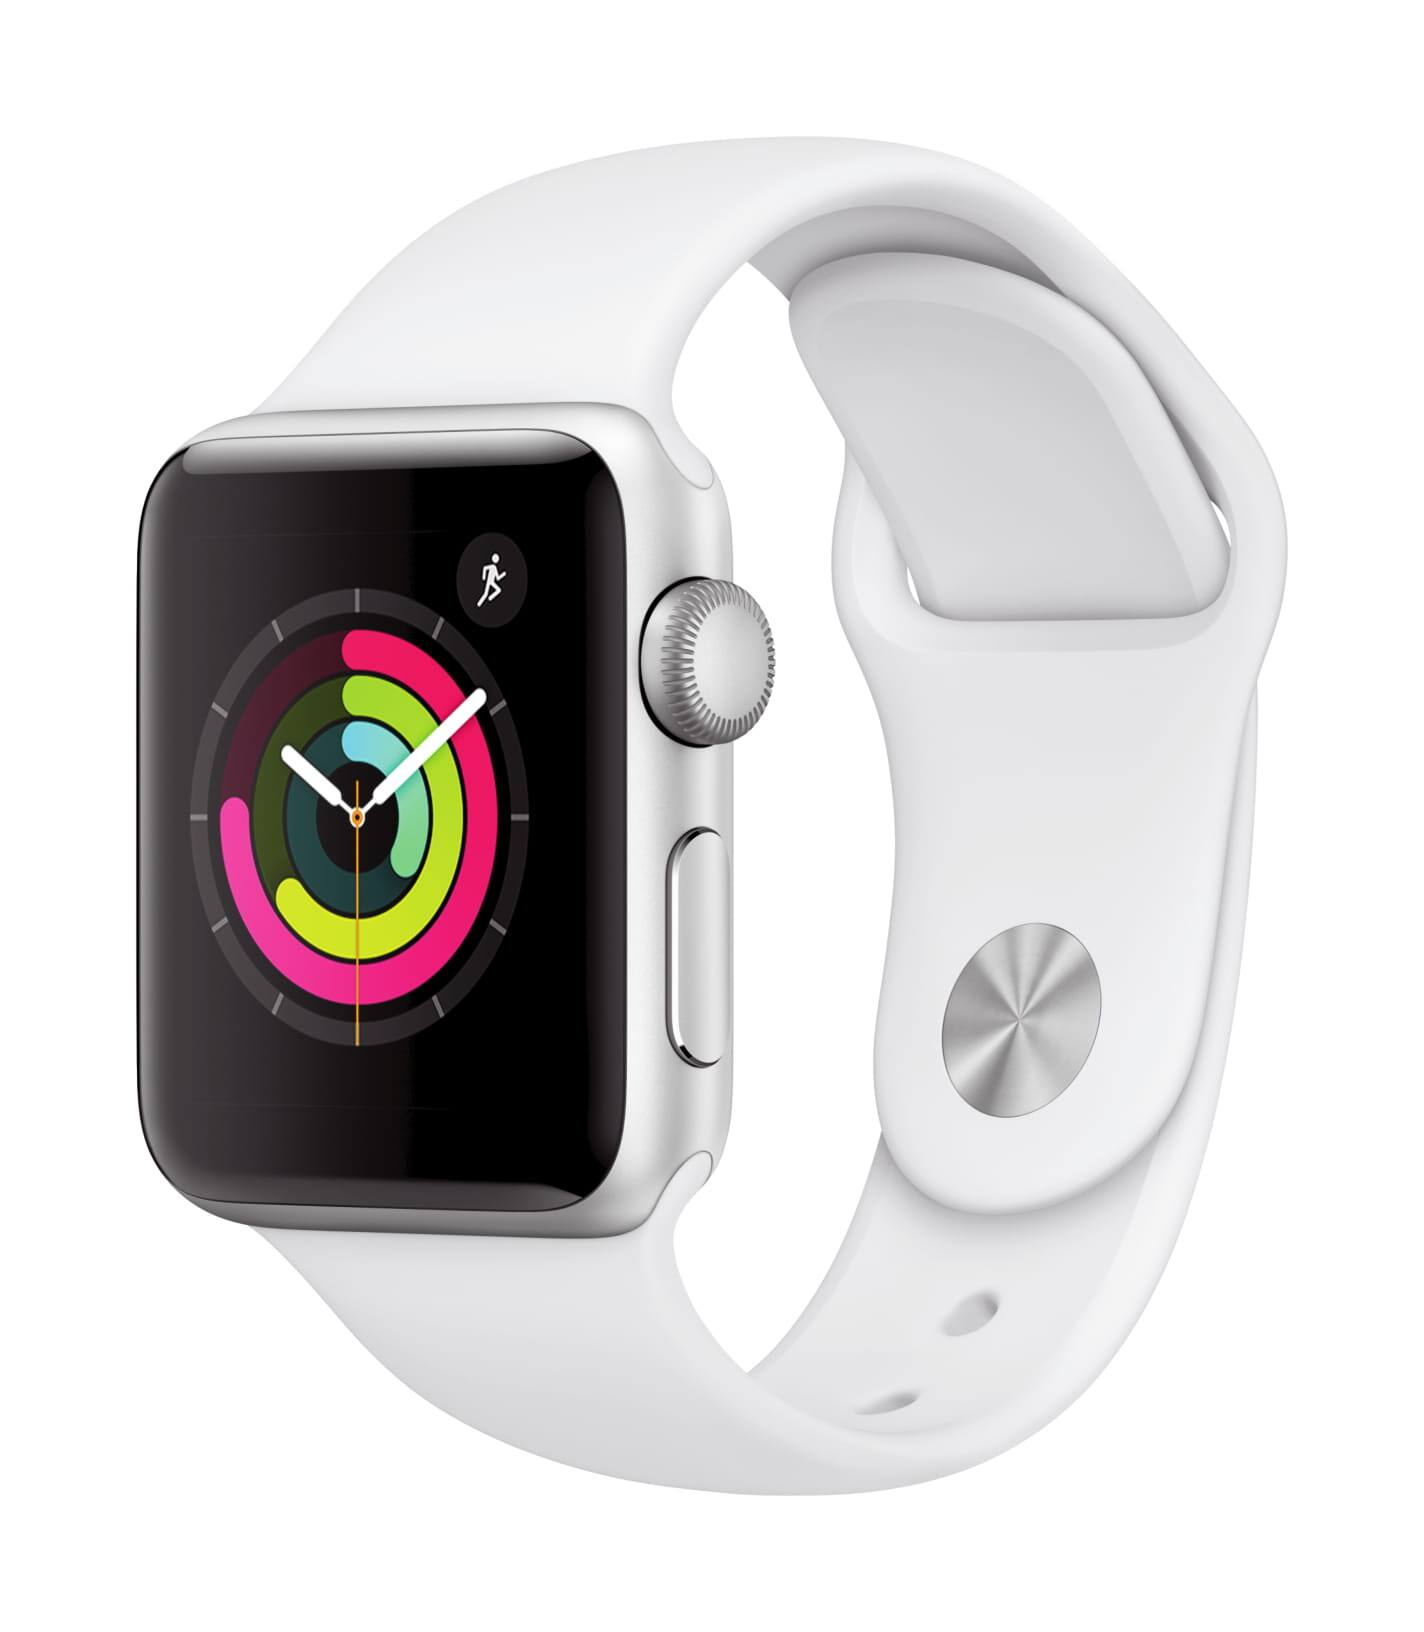 Apple Watch Series 3- Discount $189 for 38mm @ Wal-Mart